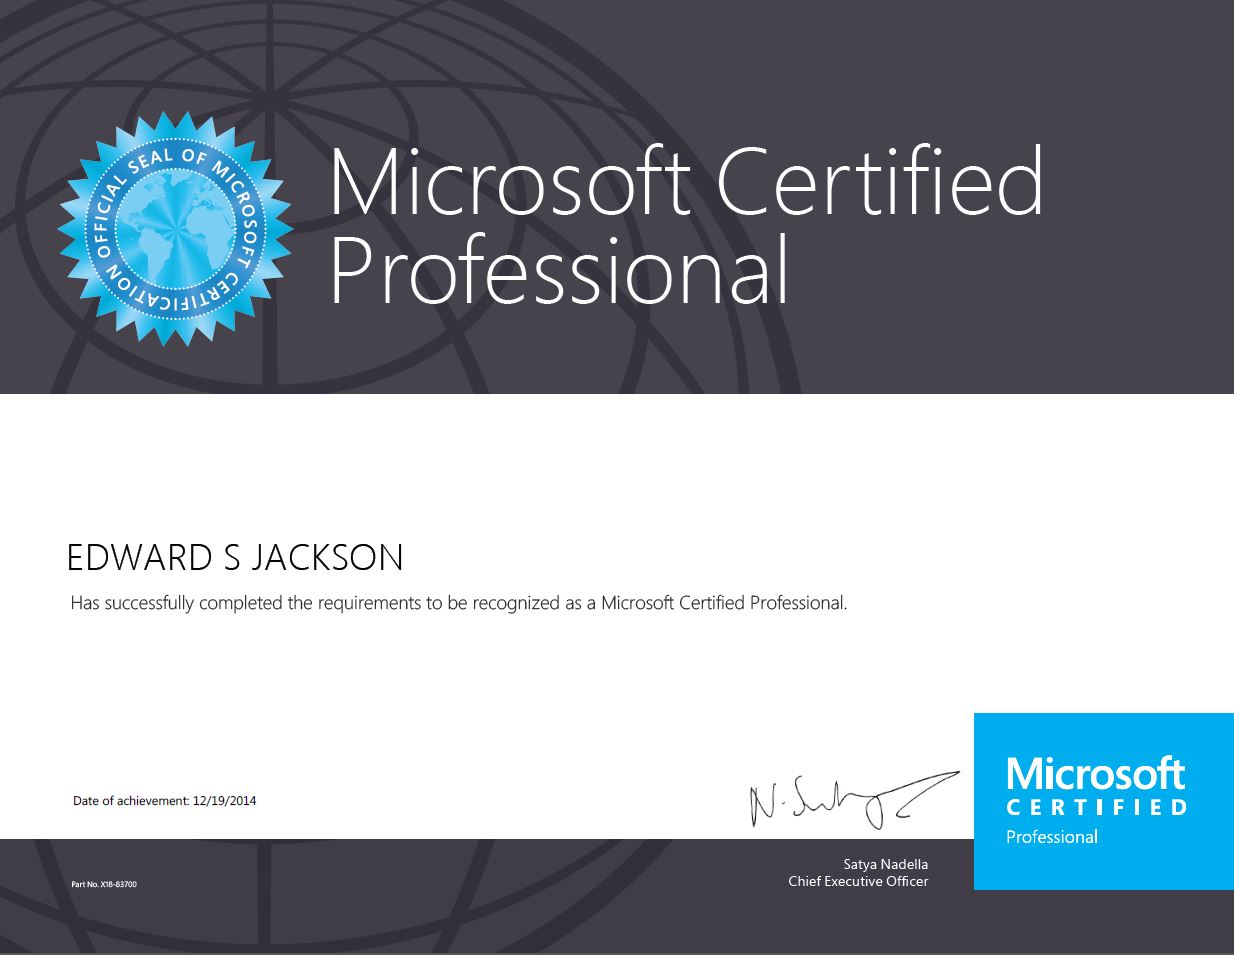 Windows 2012 certified